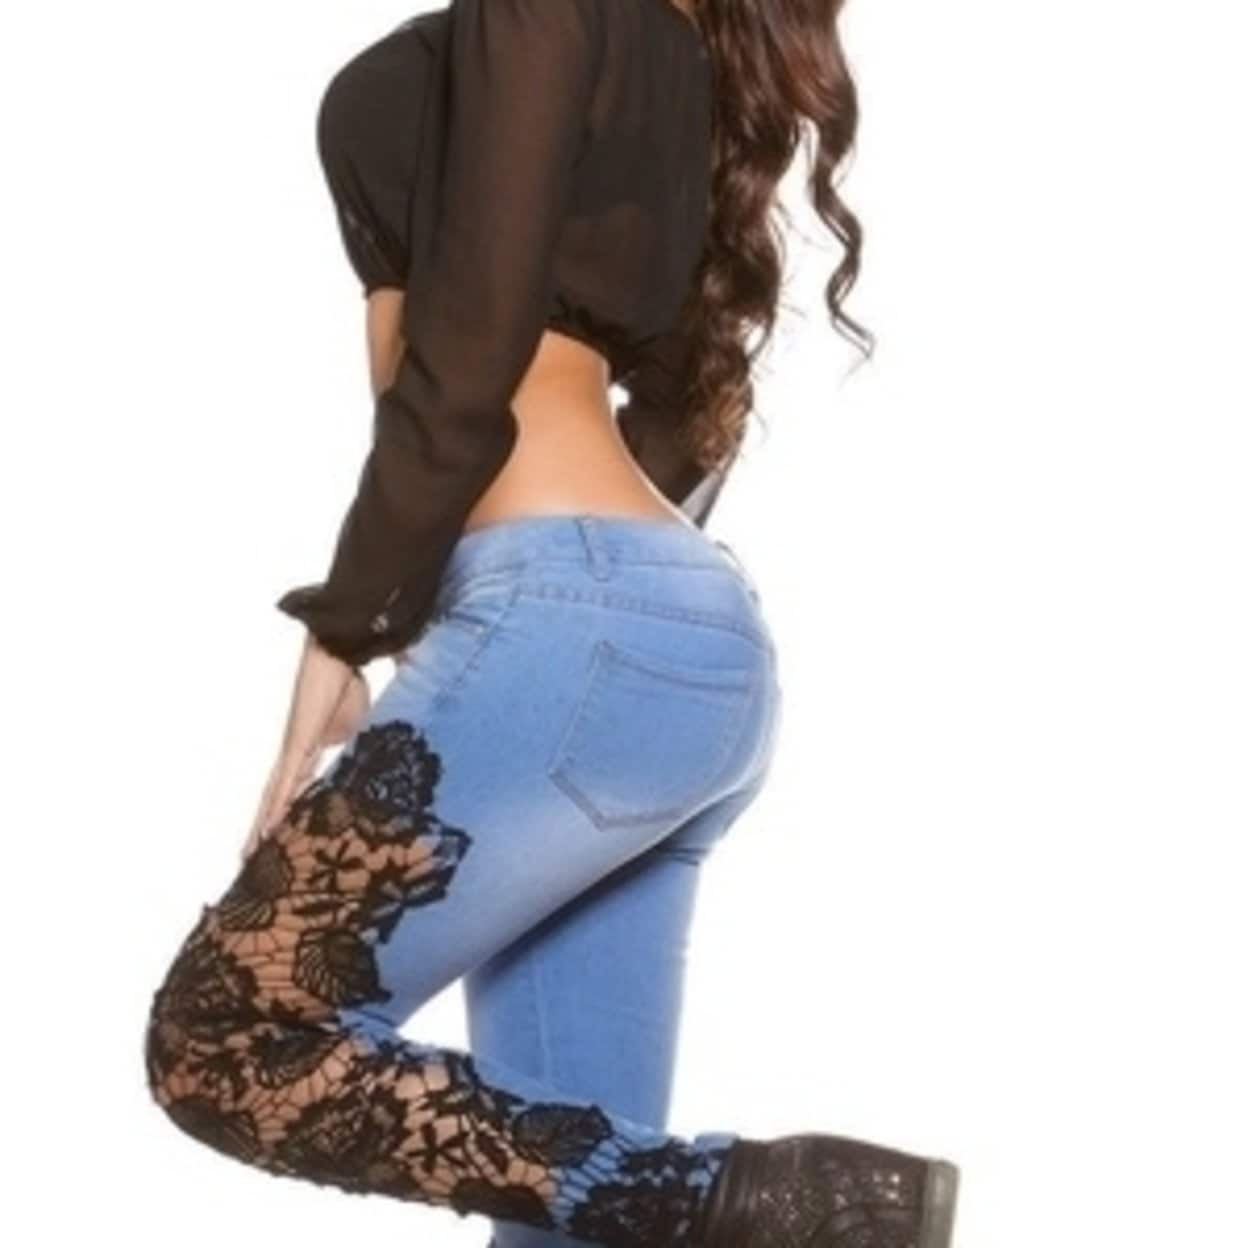 3f5f004de Shop Women Hollow Lace Crochet Spliced Denim Pants Elastic Ripped Holes  Jeans - Free Shipping On Orders Over  45 - Overstock - 27741036